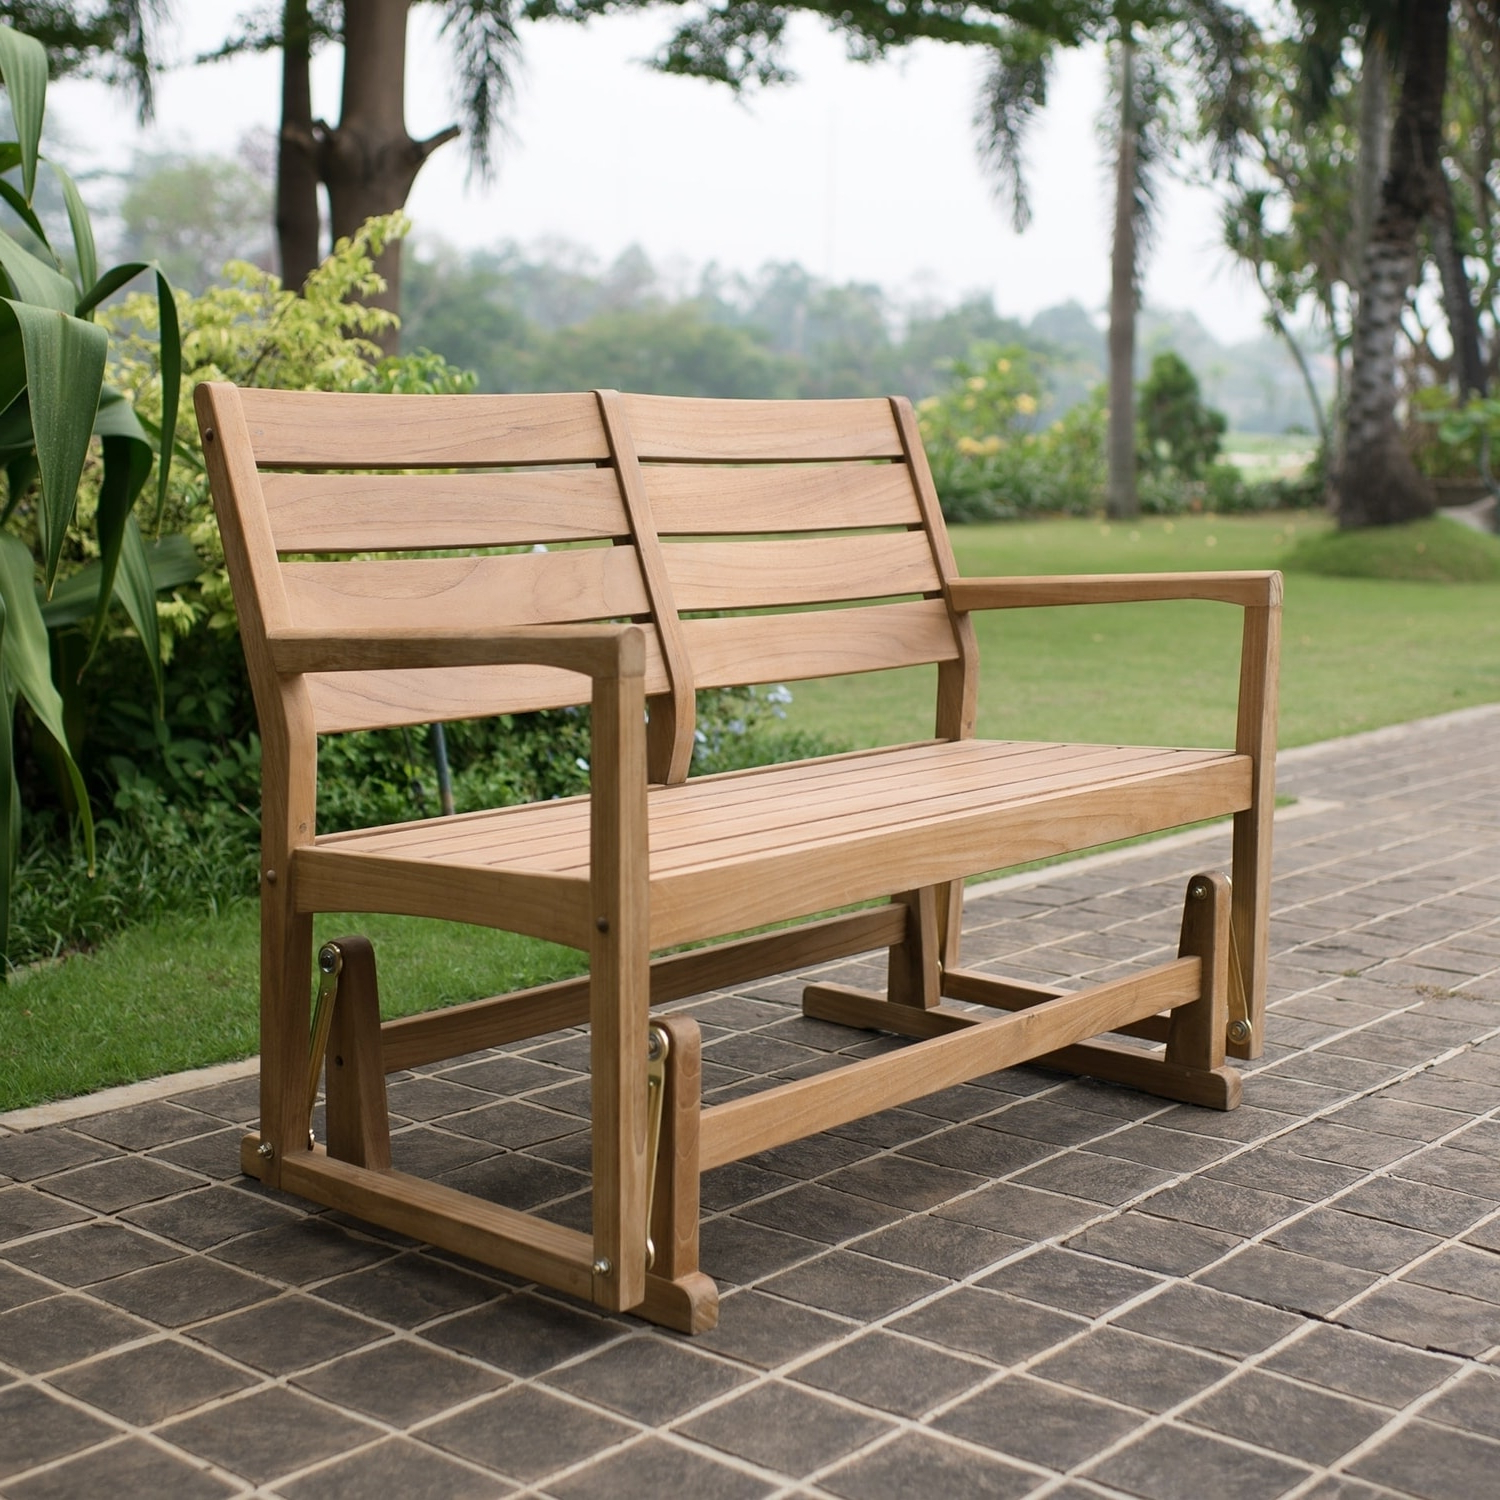 Widely Used Teak Glider Benches In Cambridge Casual Andrea Teak Glider Bench – Walmart (View 30 of 30)